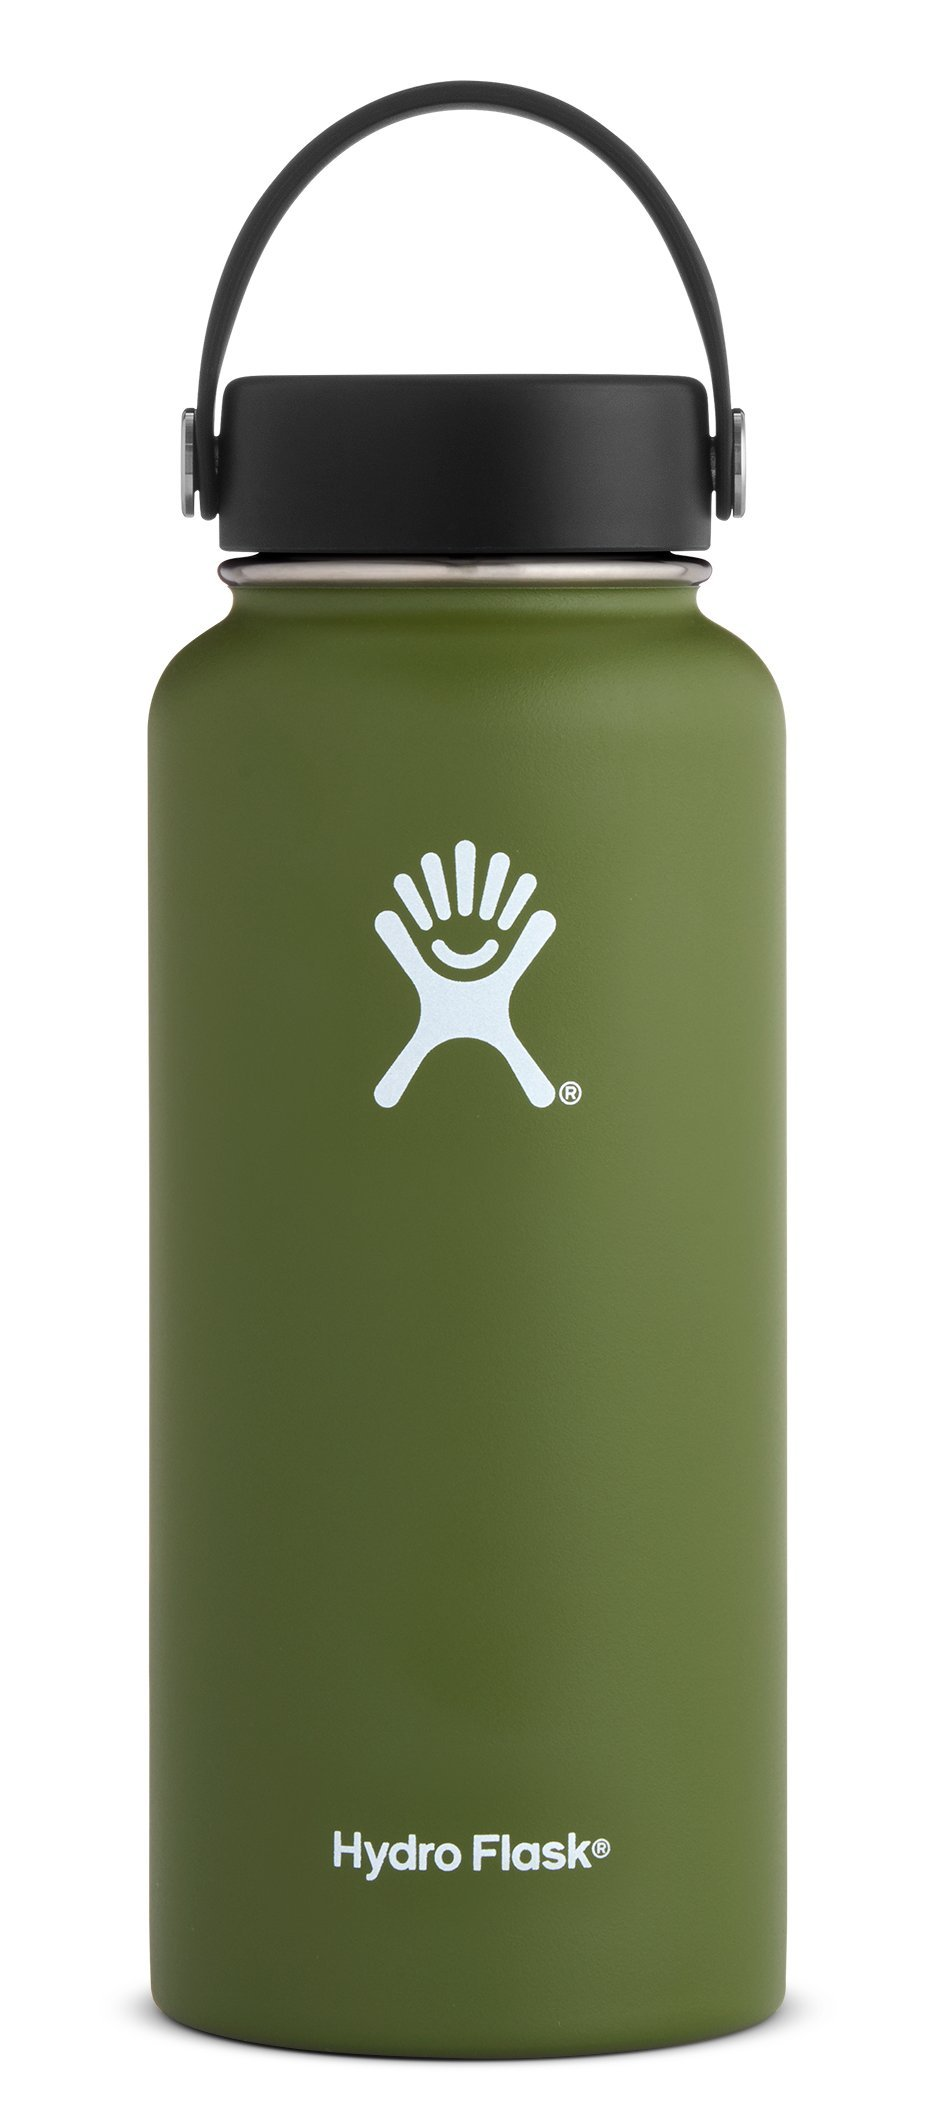 Hydro Flask 32 oz Double Wall Vacuum Insulated Stainless Steel Leak Proof Sports Water Bottle, Wide Mouth with BPA Free Flex Cap, Olive